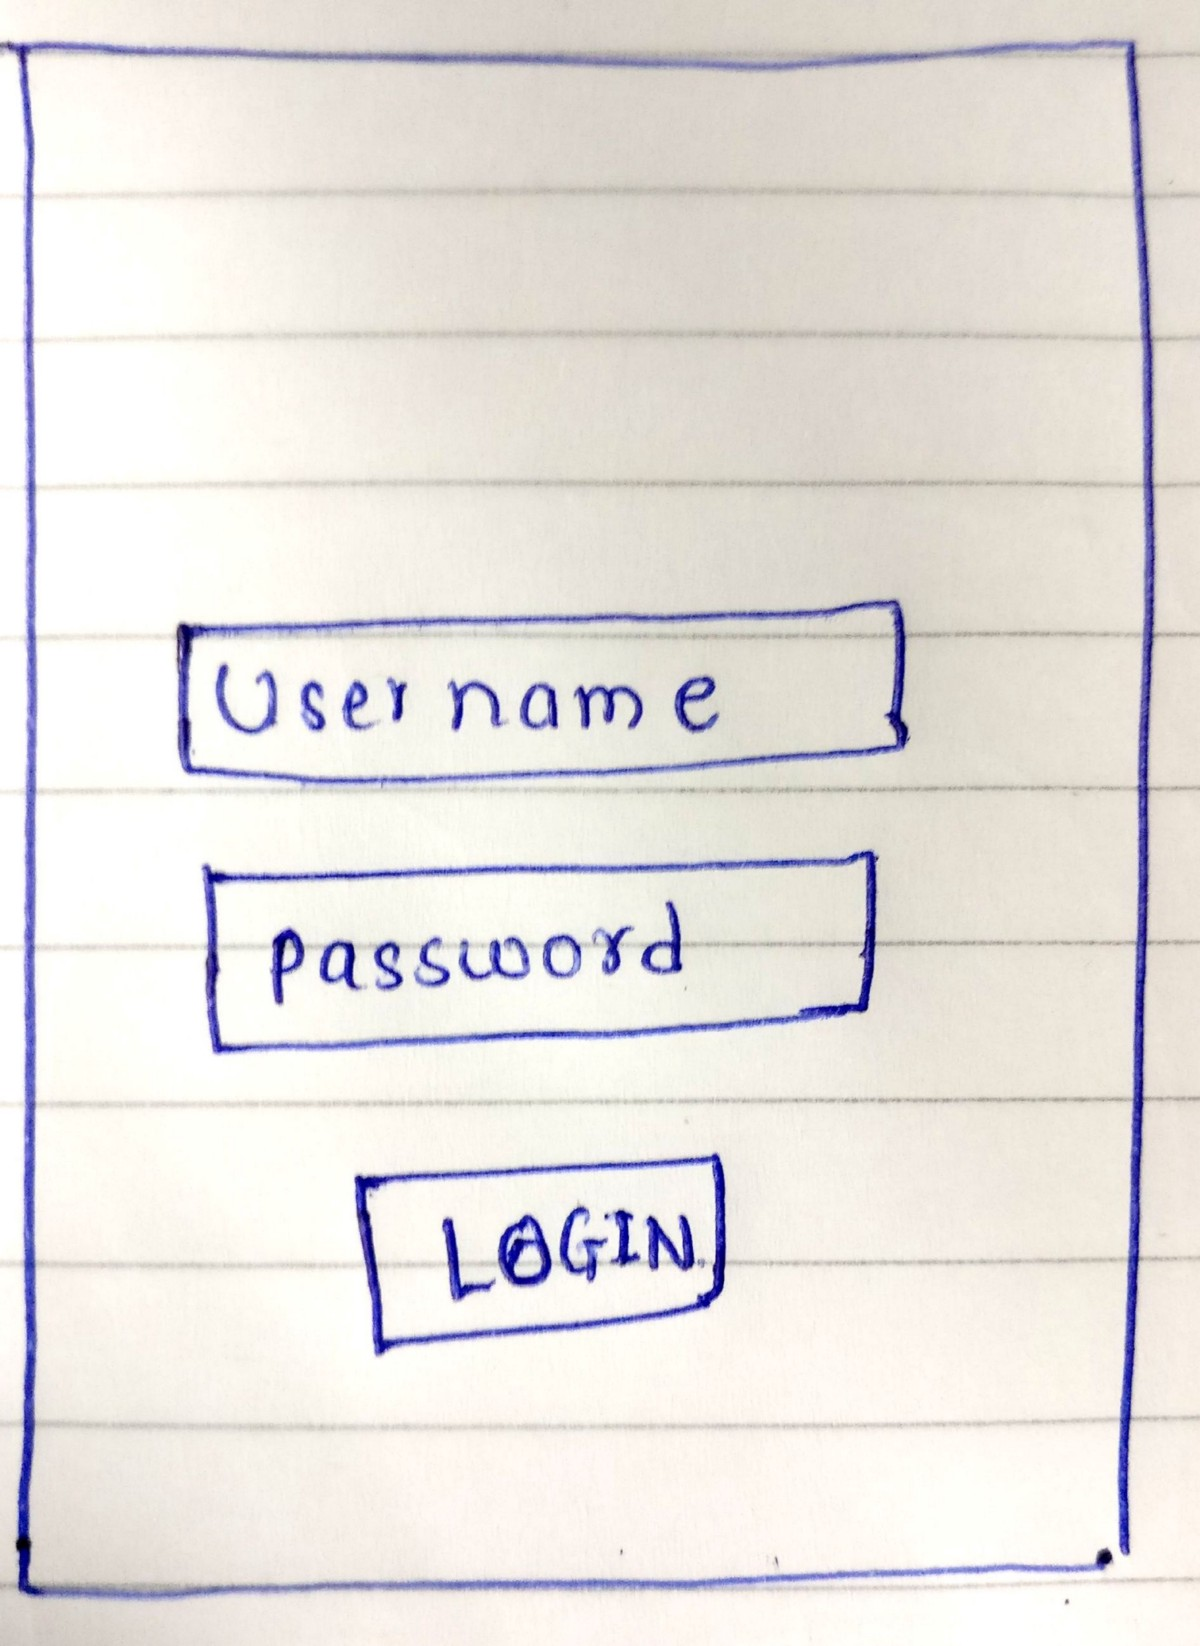 How to do tdd in android part 3 mocking integration testing lets create ui for login as shown in diagram i know you will make better ui than this pooptronica Choice Image